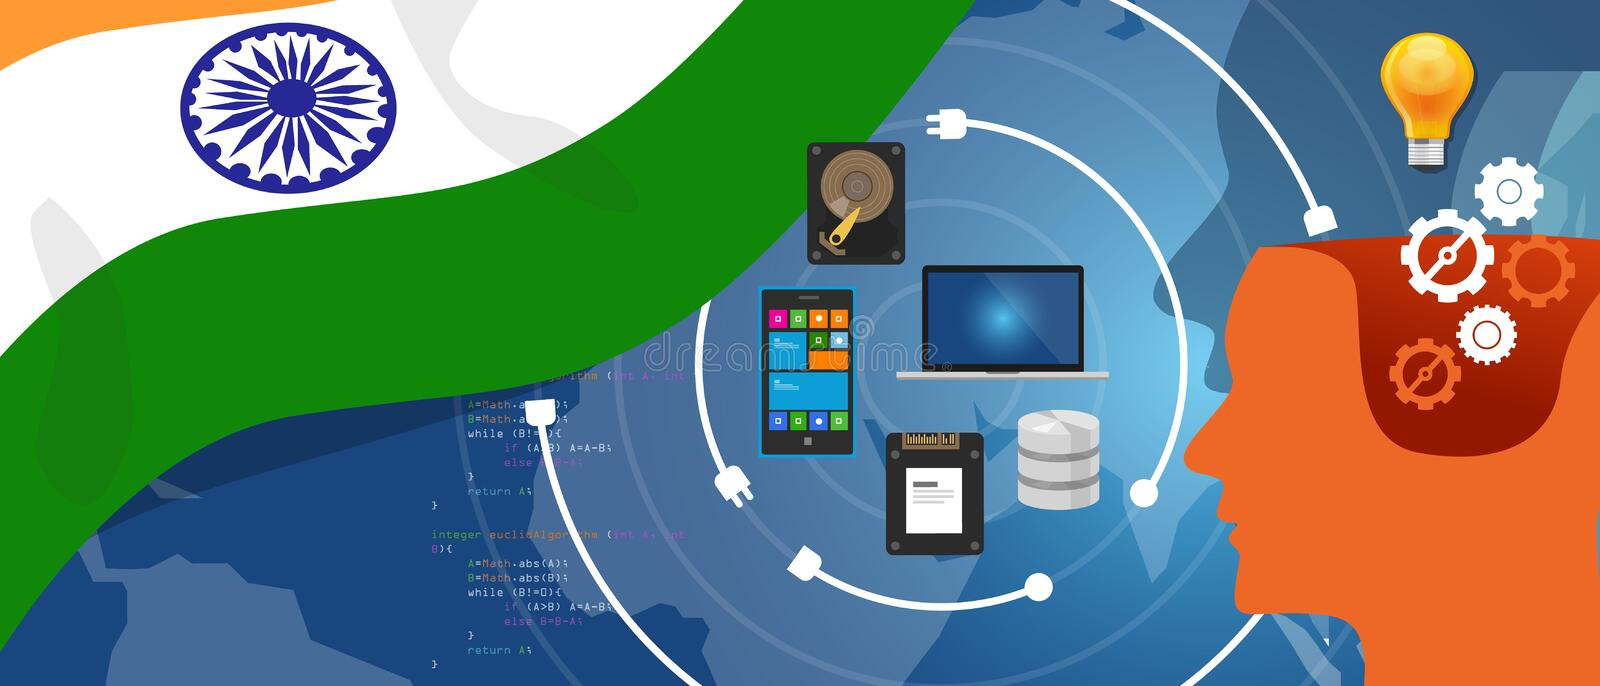 India IT information technology digital infrastructure connecting business data via internet network using computer stock illustration